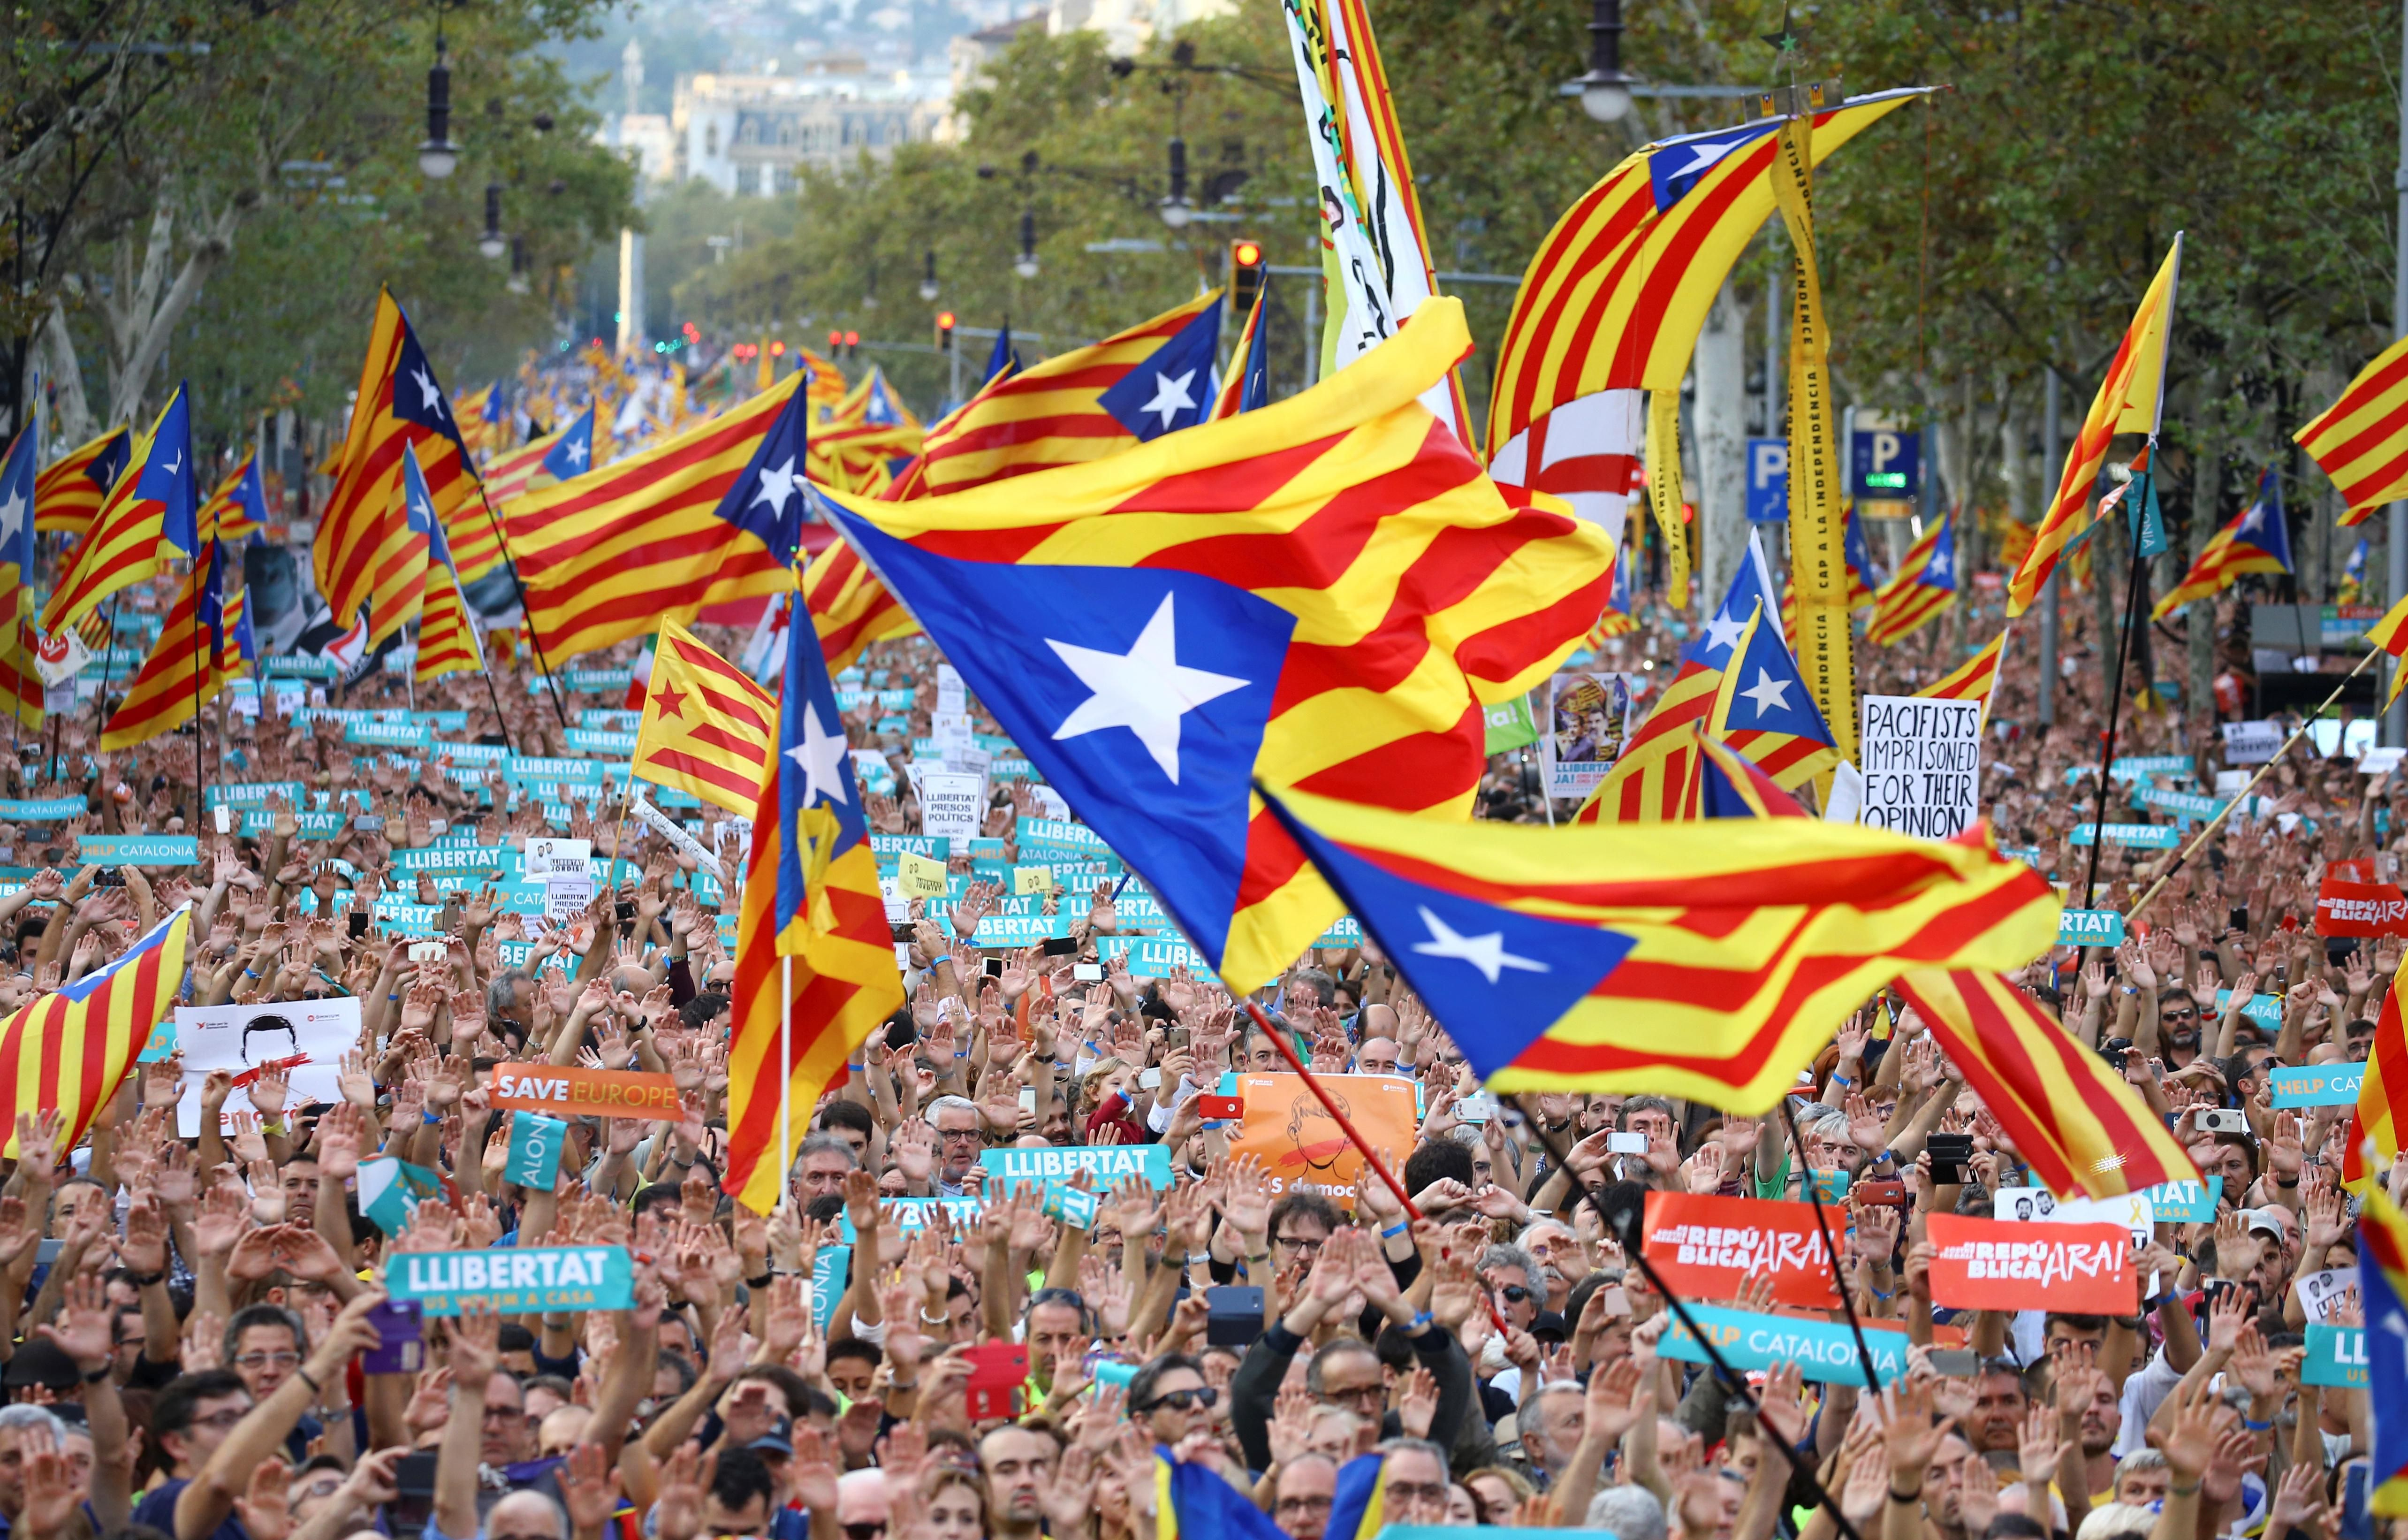 Why is Spain pardoning Catalan leaders jailed for sedition?